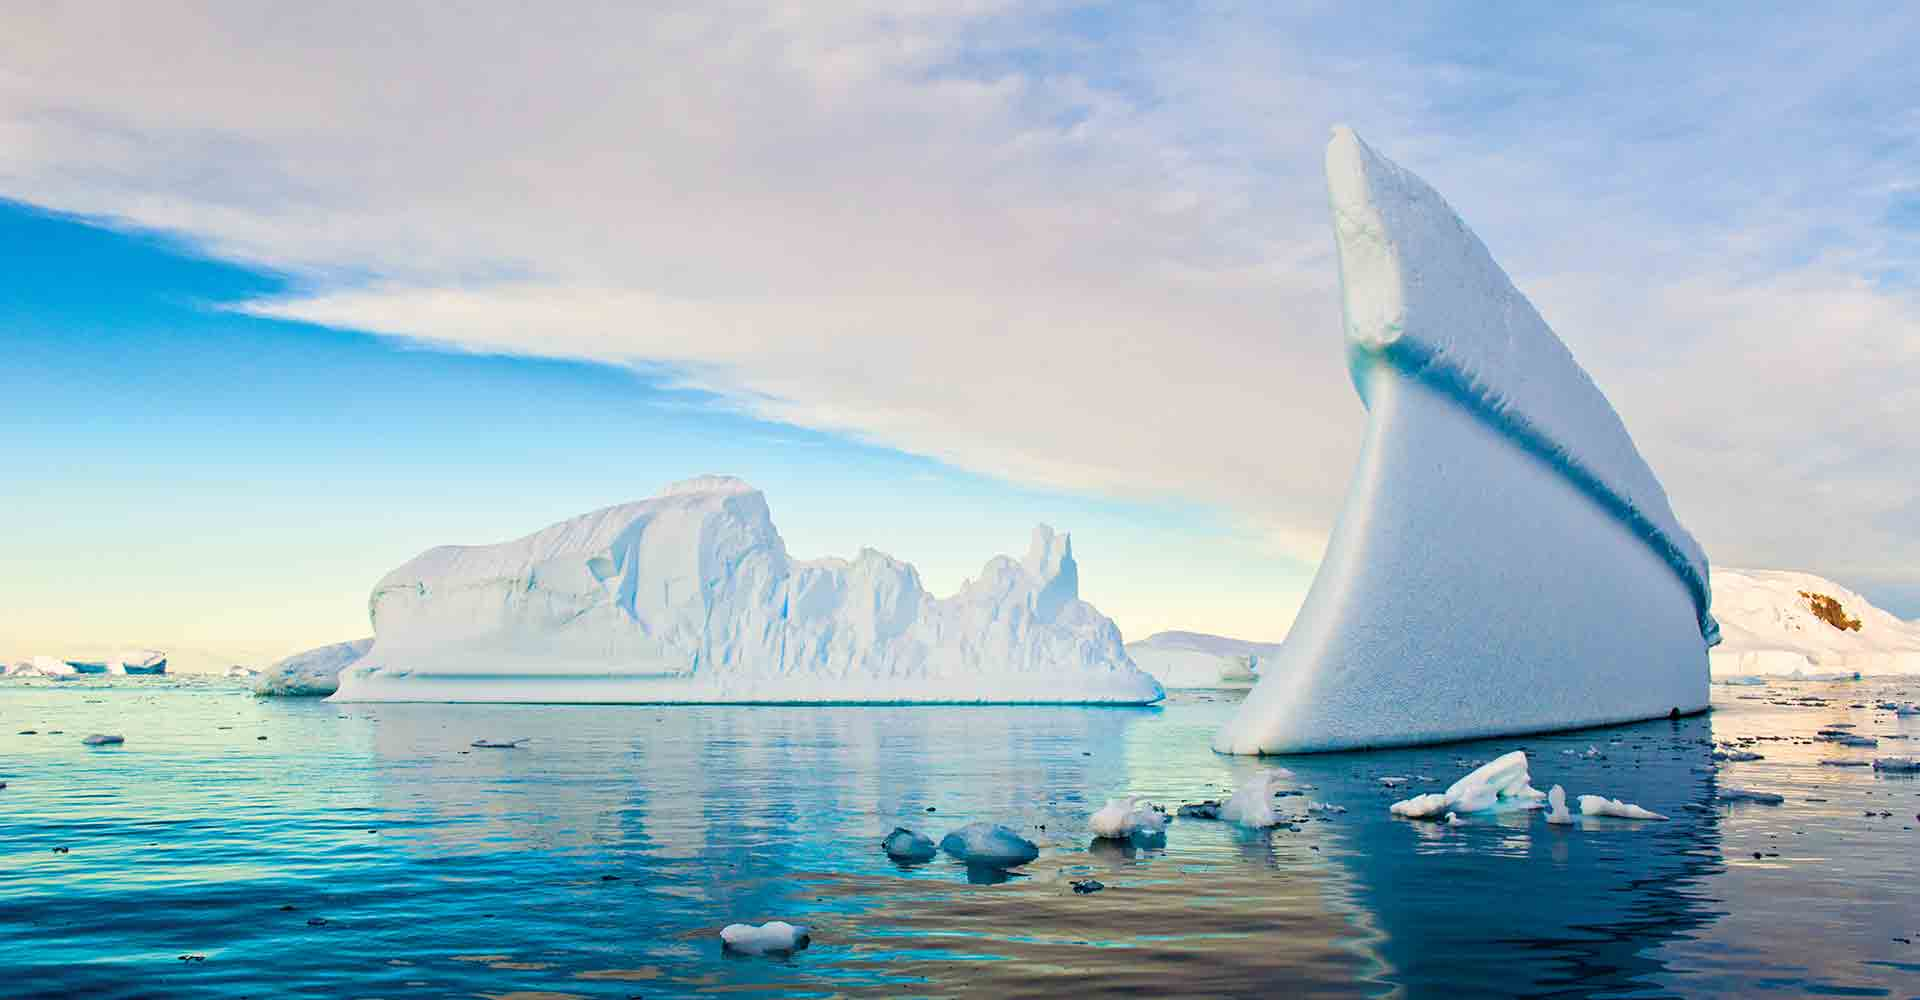 01_antarctic-experience-page-carousel_aa611